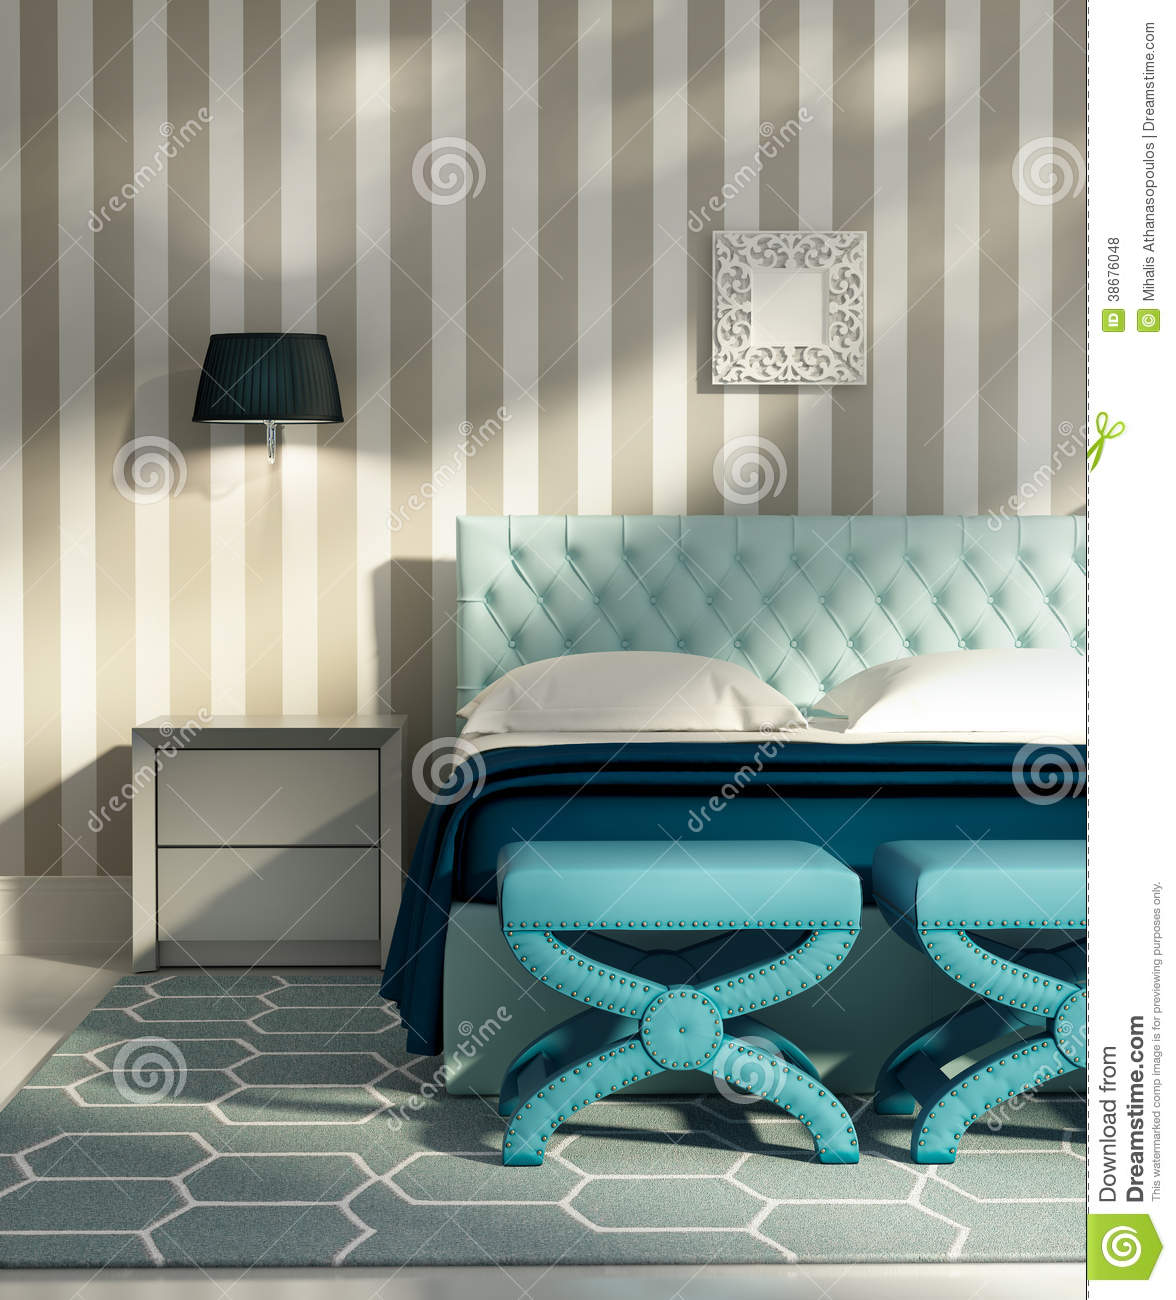 Contemporary luxury bedroom with blue stools